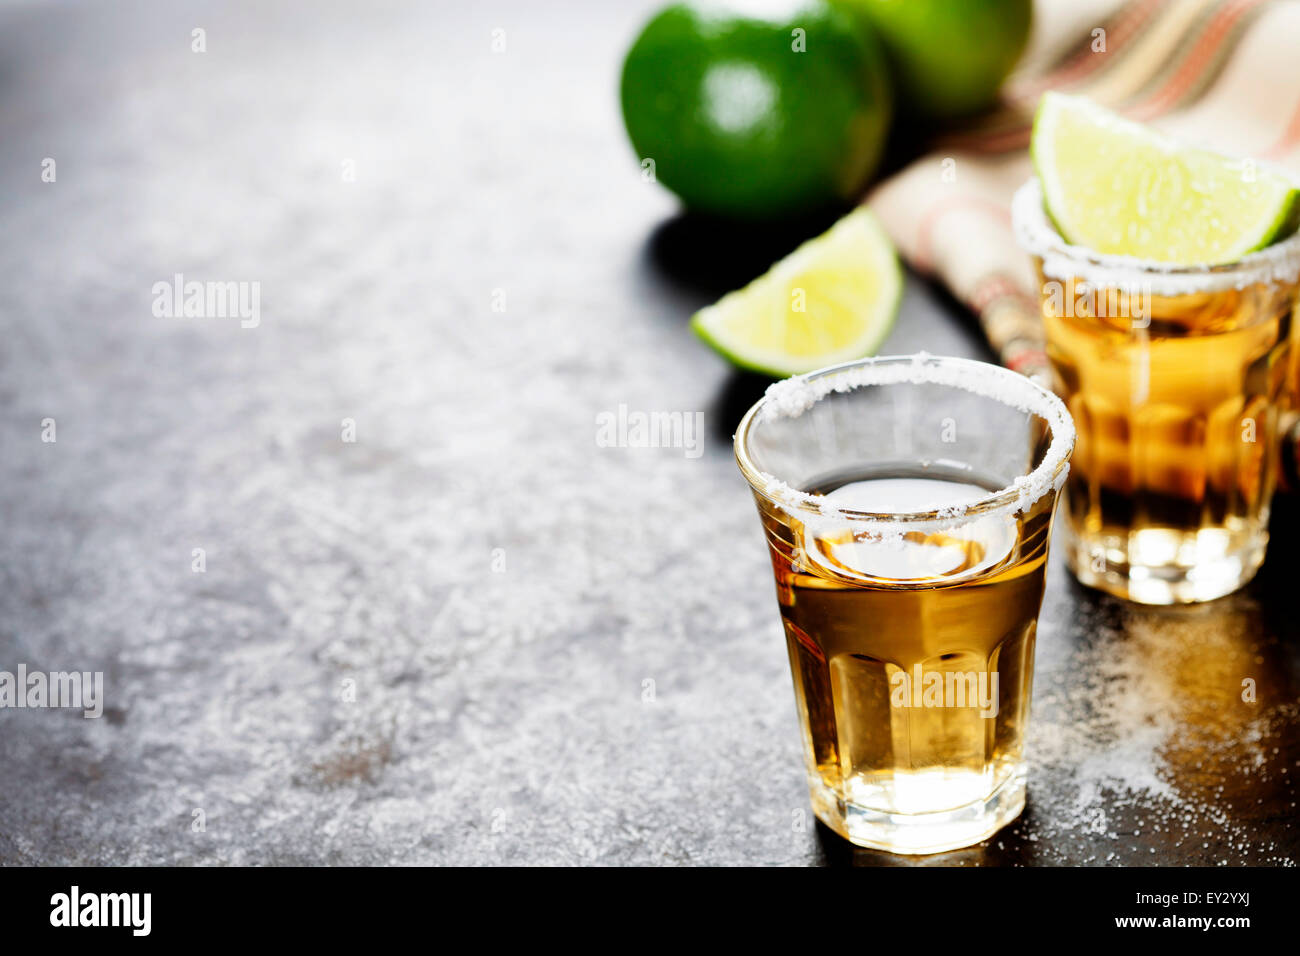 Tequila shots with lime and salt on rustic  background - Stock Image